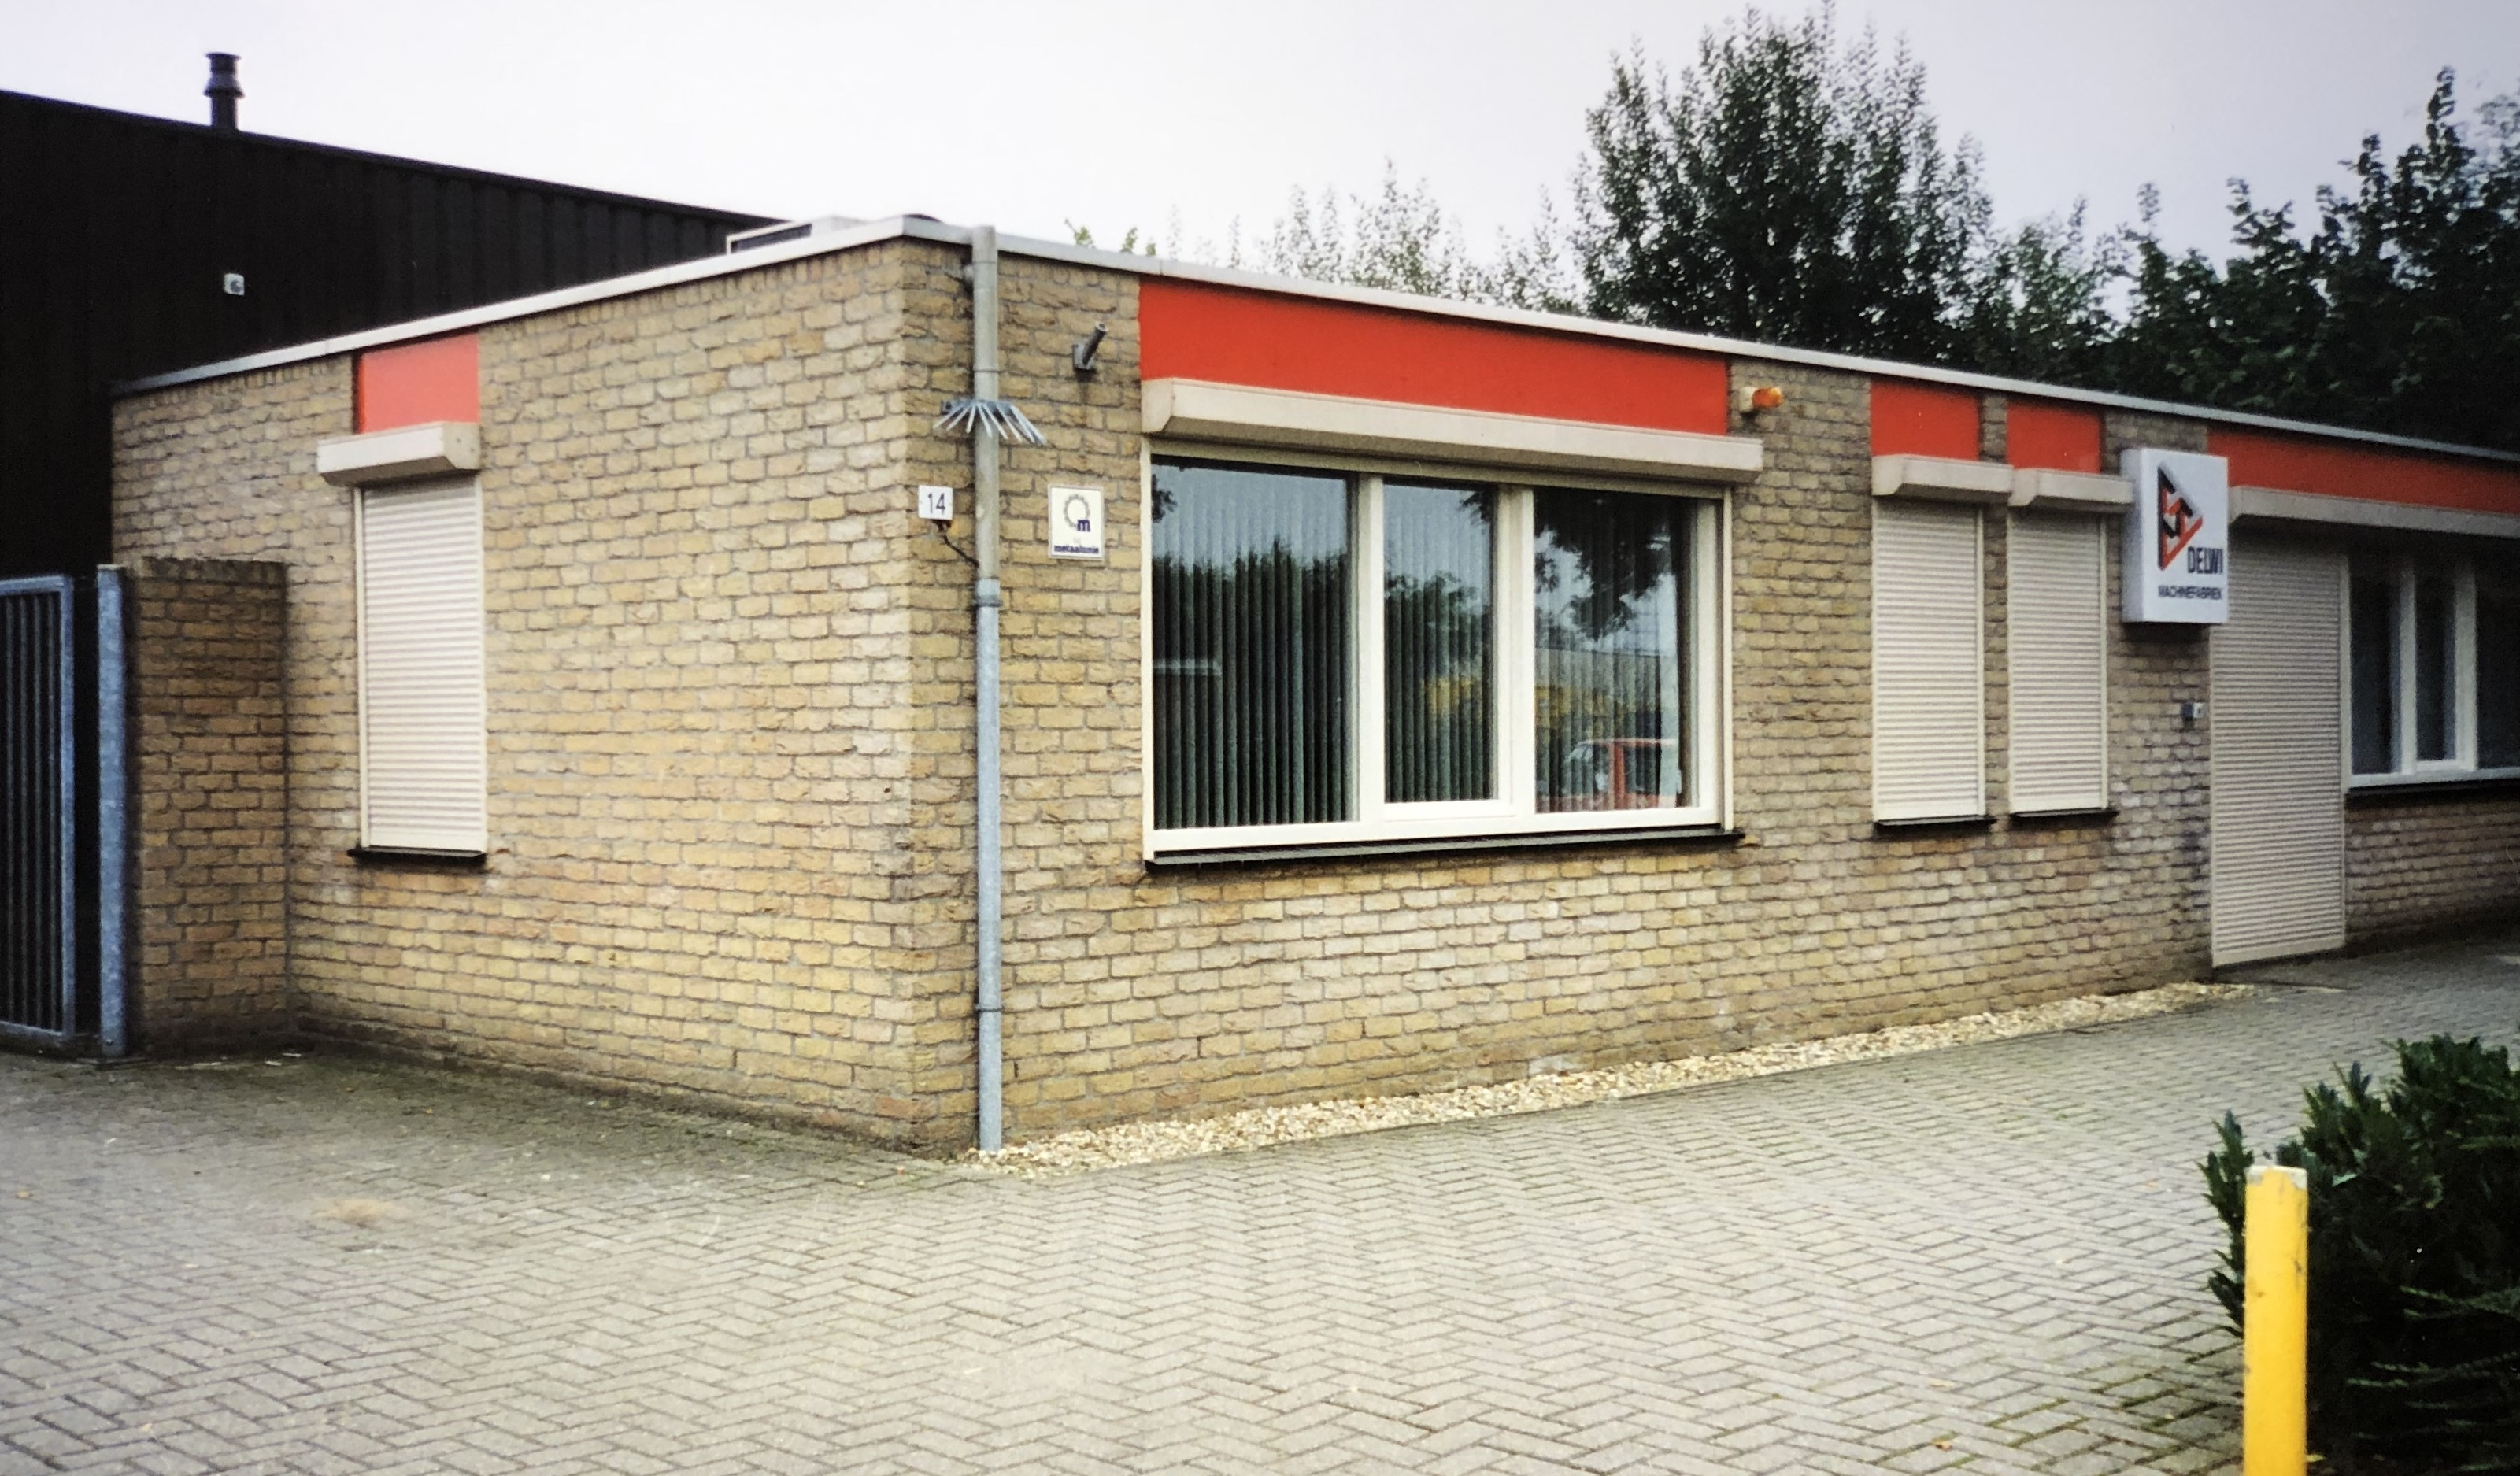 Oude-Pand-Start-Delwi-Groenink